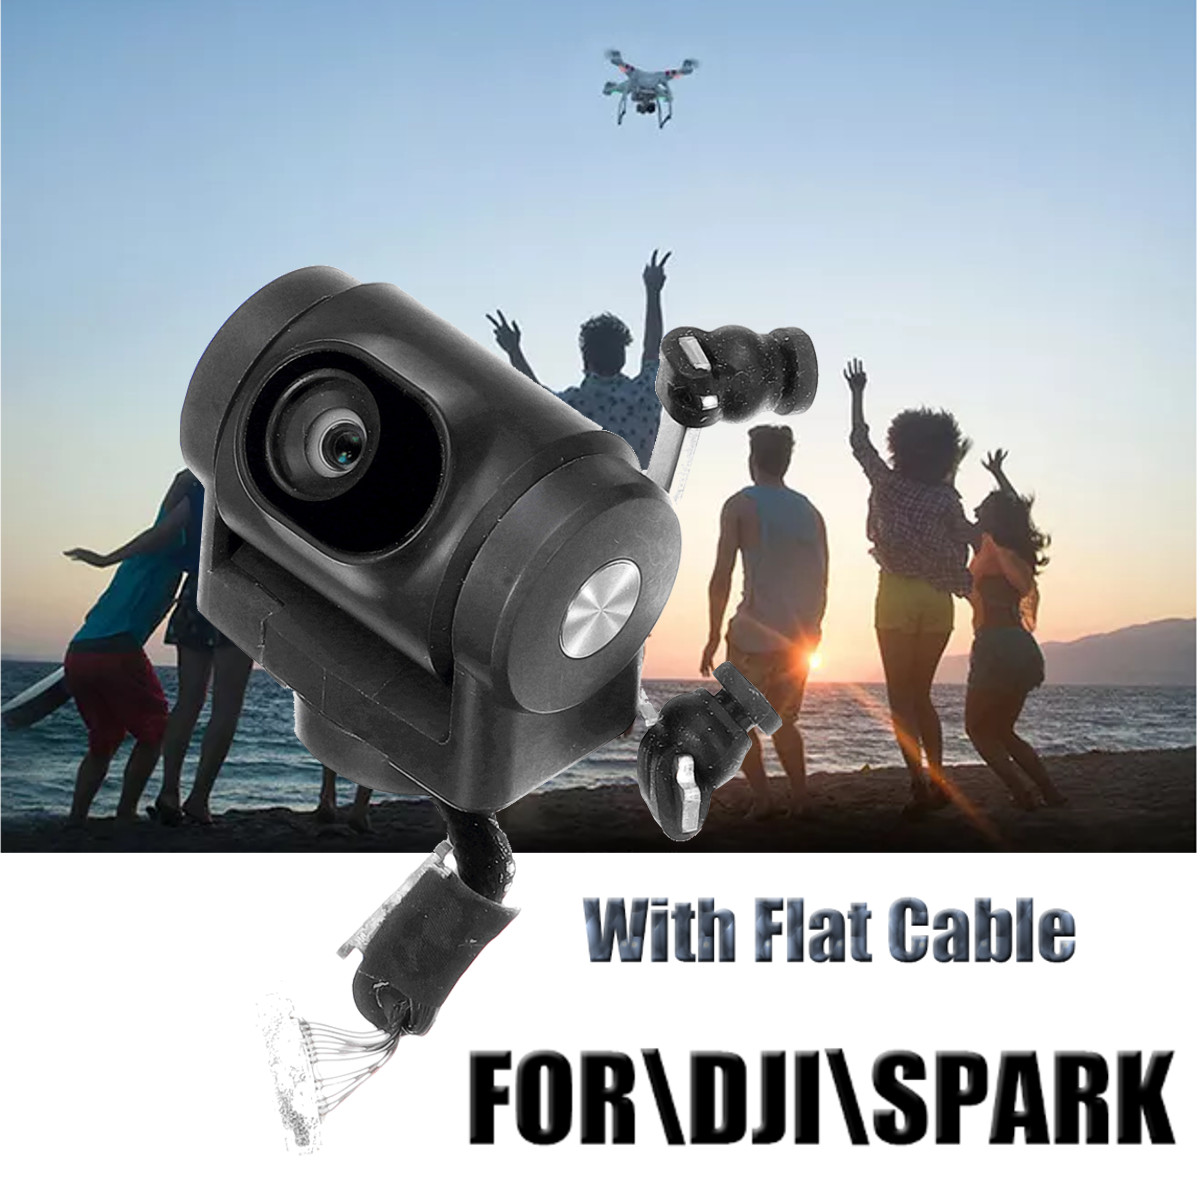 Gimbal Camera Spark RC Drone Repair part FPV HD  Repair Part For DJI Spark Drone s With Flat cableGimbal Camera Spark RC Drone Repair part FPV HD  Repair Part For DJI Spark Drone s With Flat cable